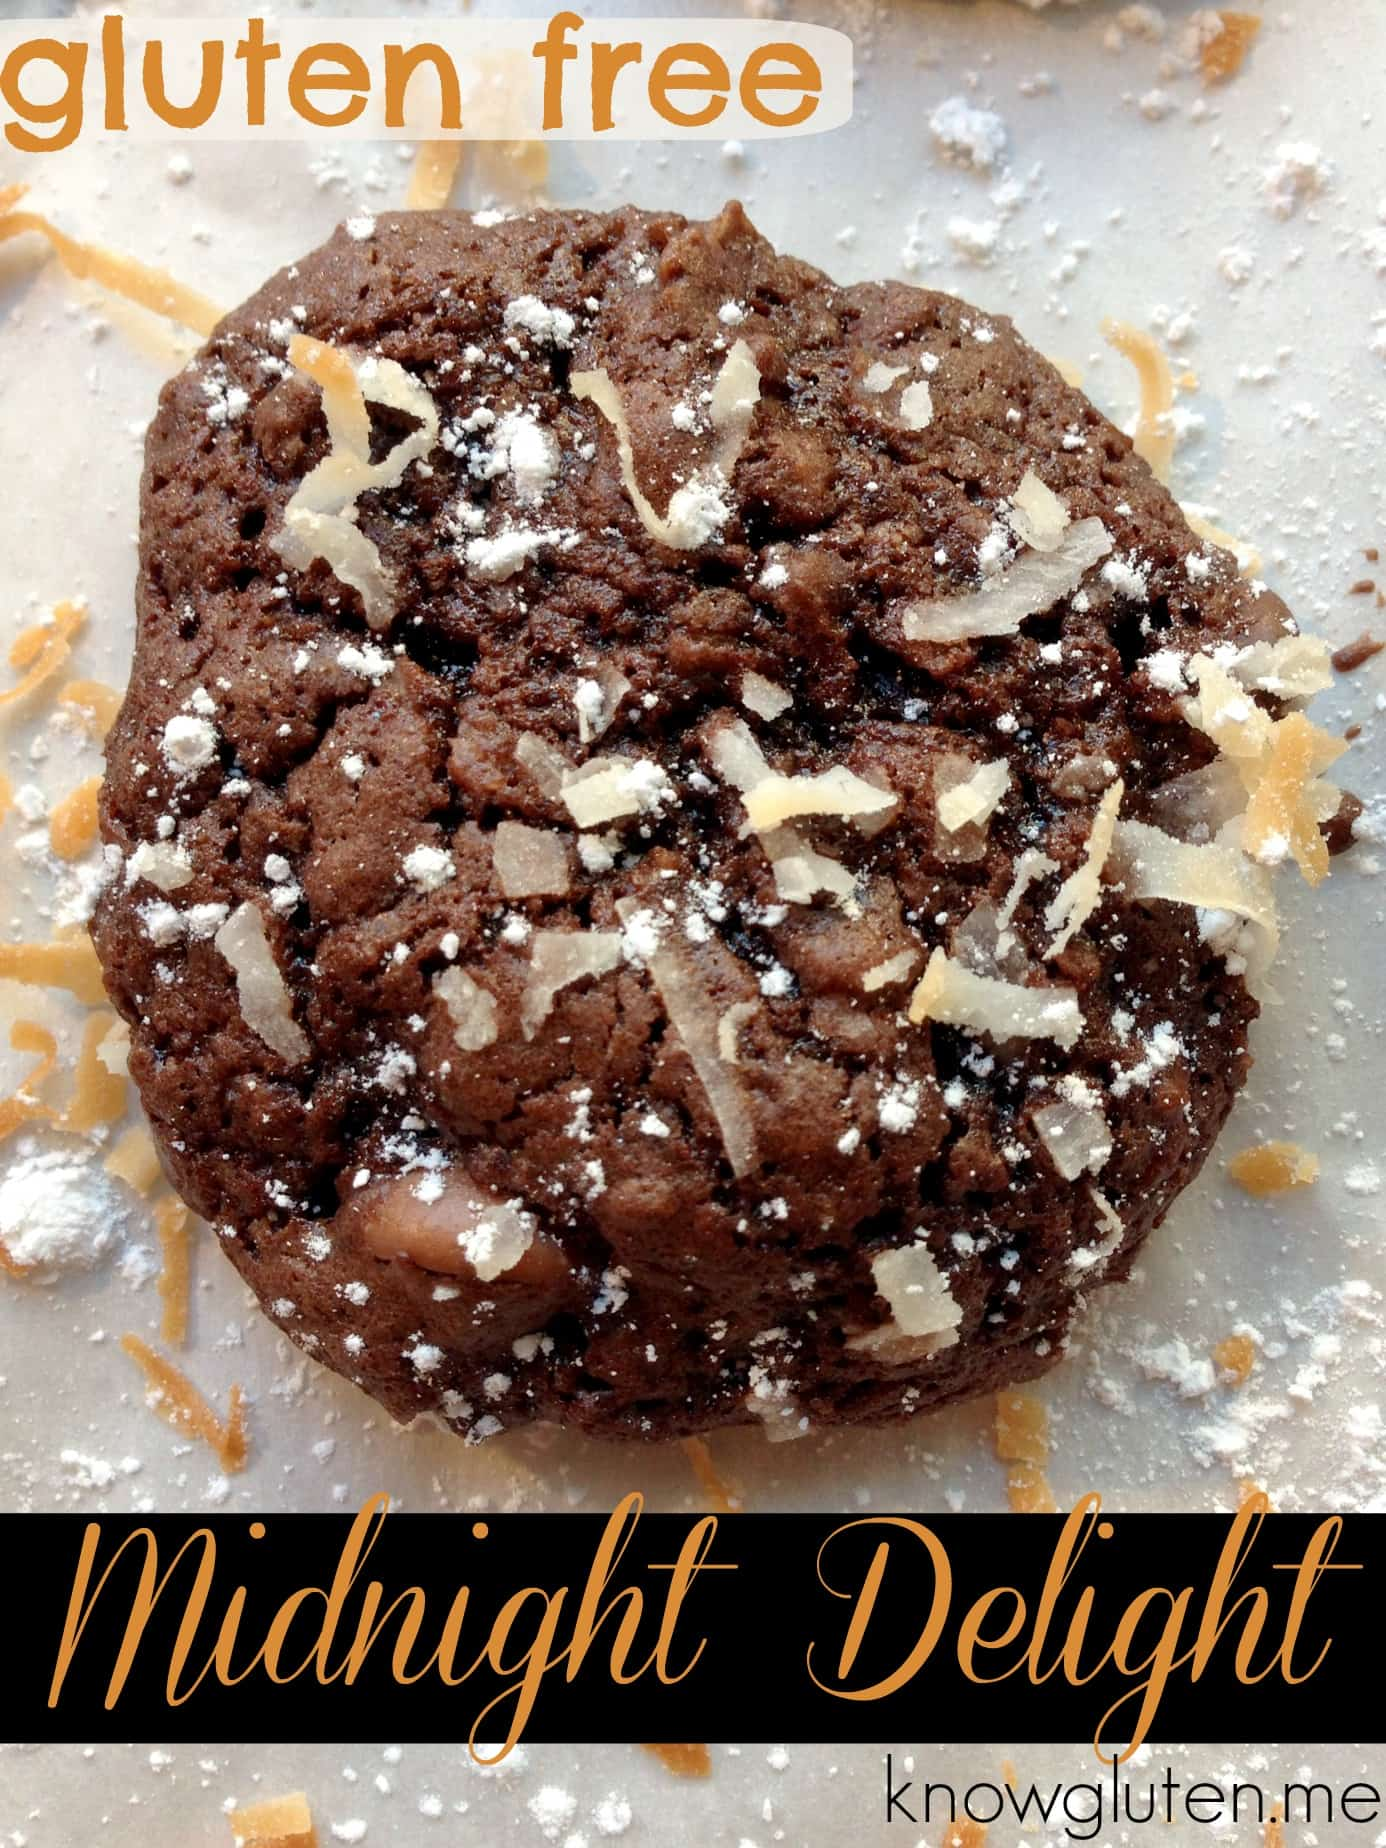 gluten free midnight delight Christmas cookies from knowgluten.me